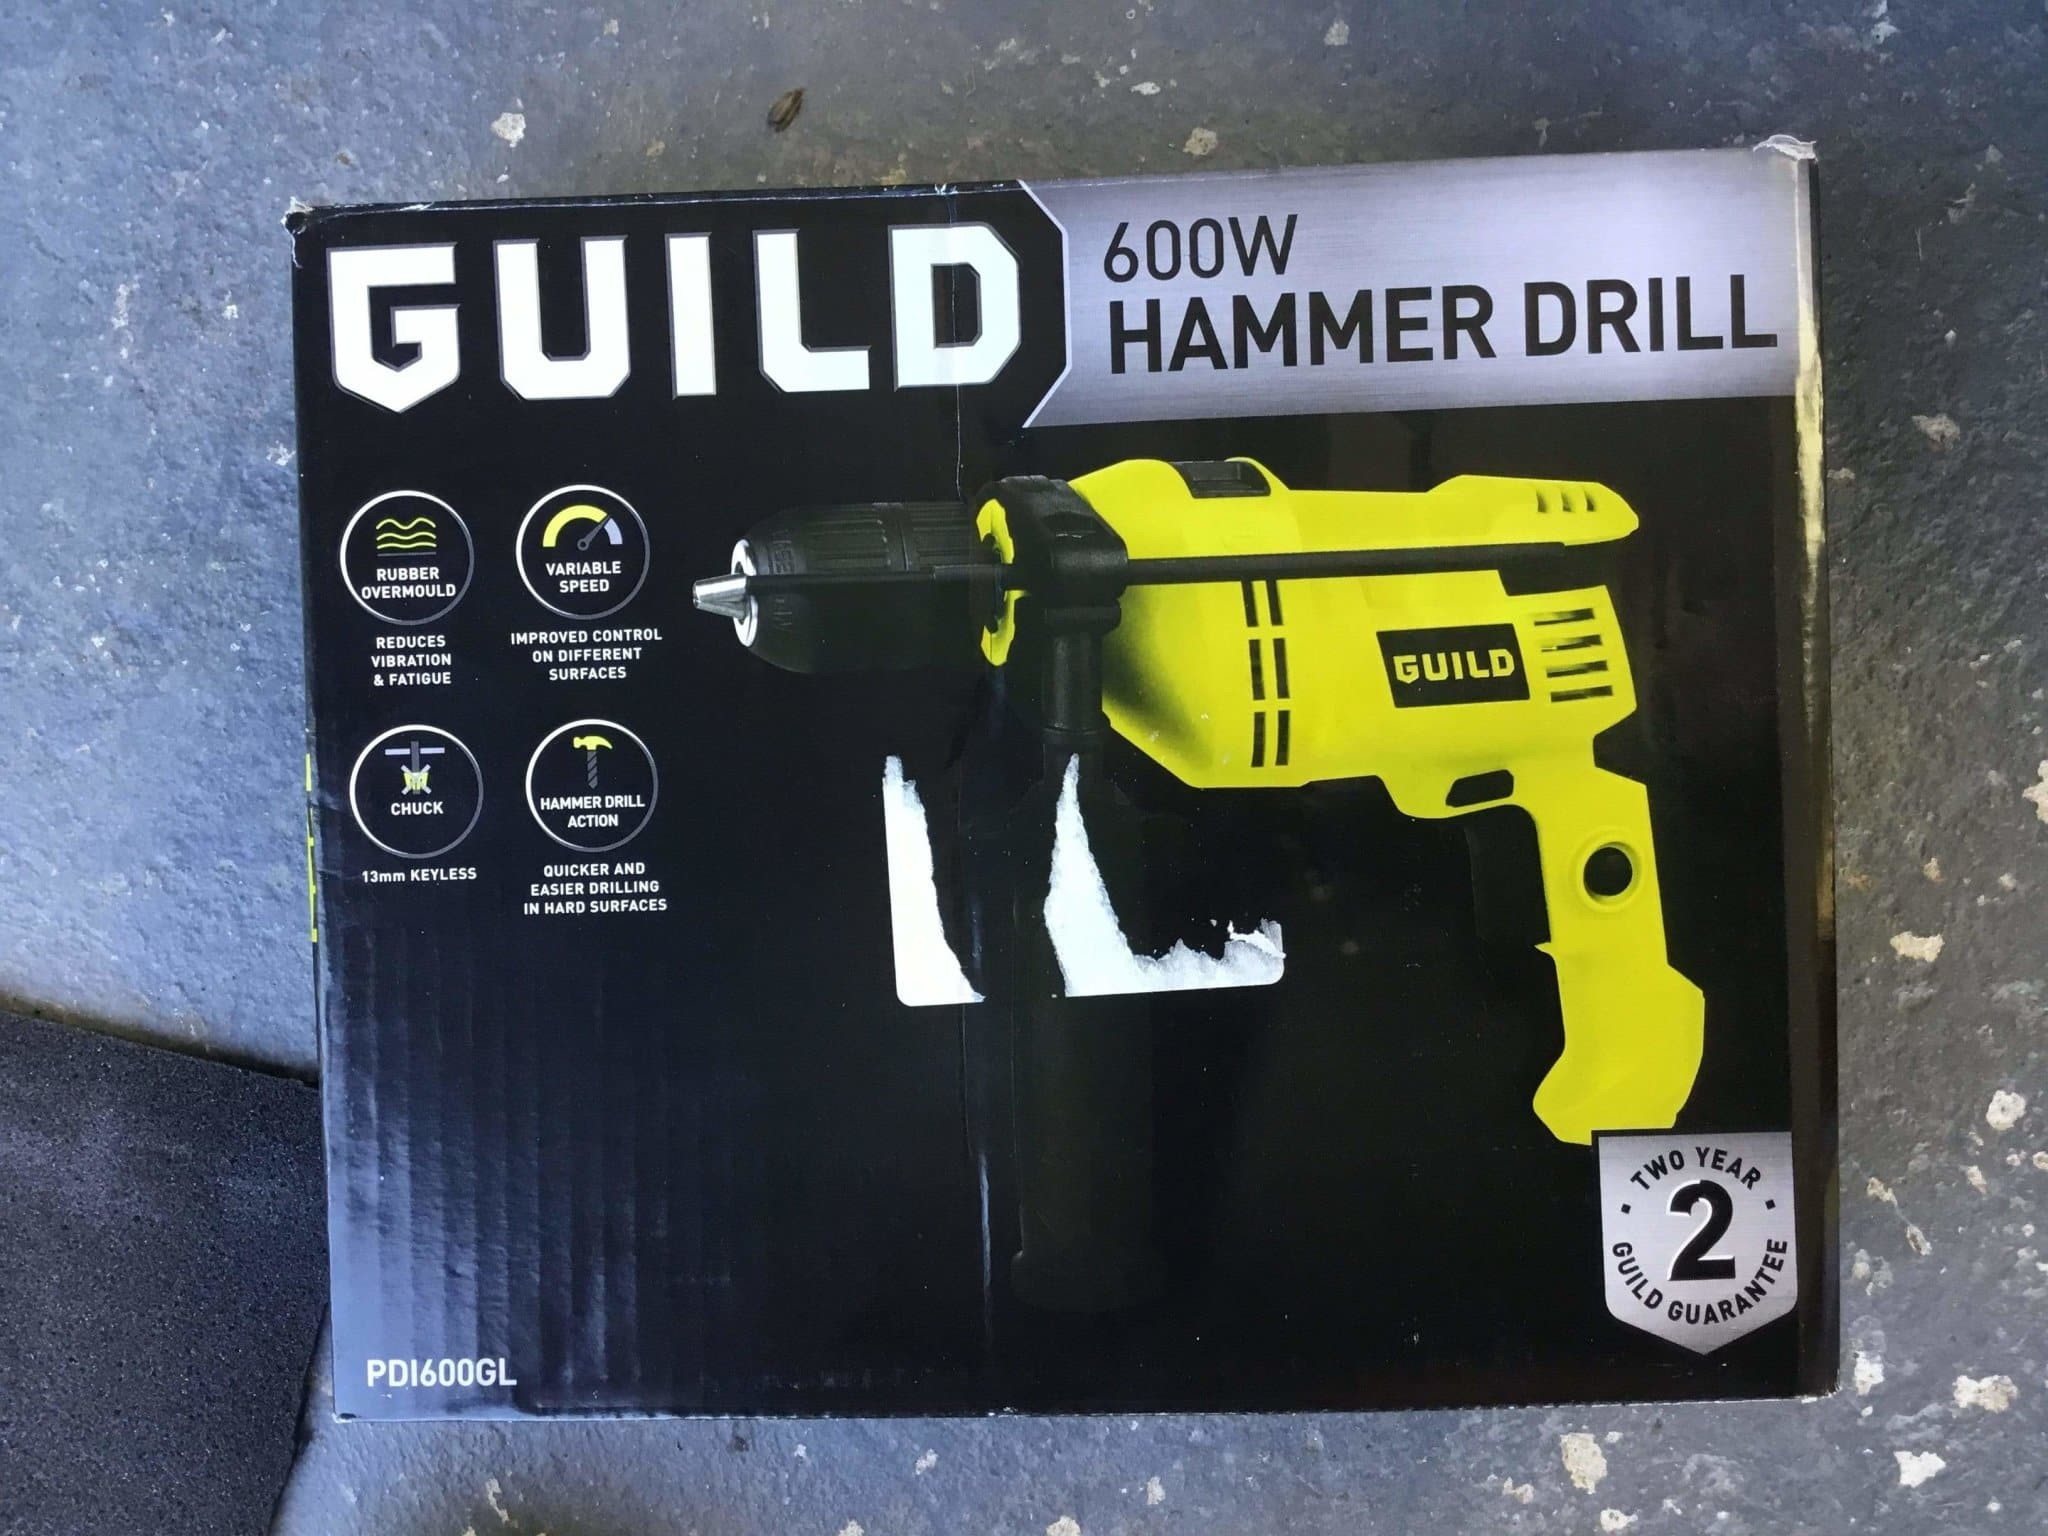 Guild 600w Power Hammer Drill - As New Condition - Discounted Deals UK